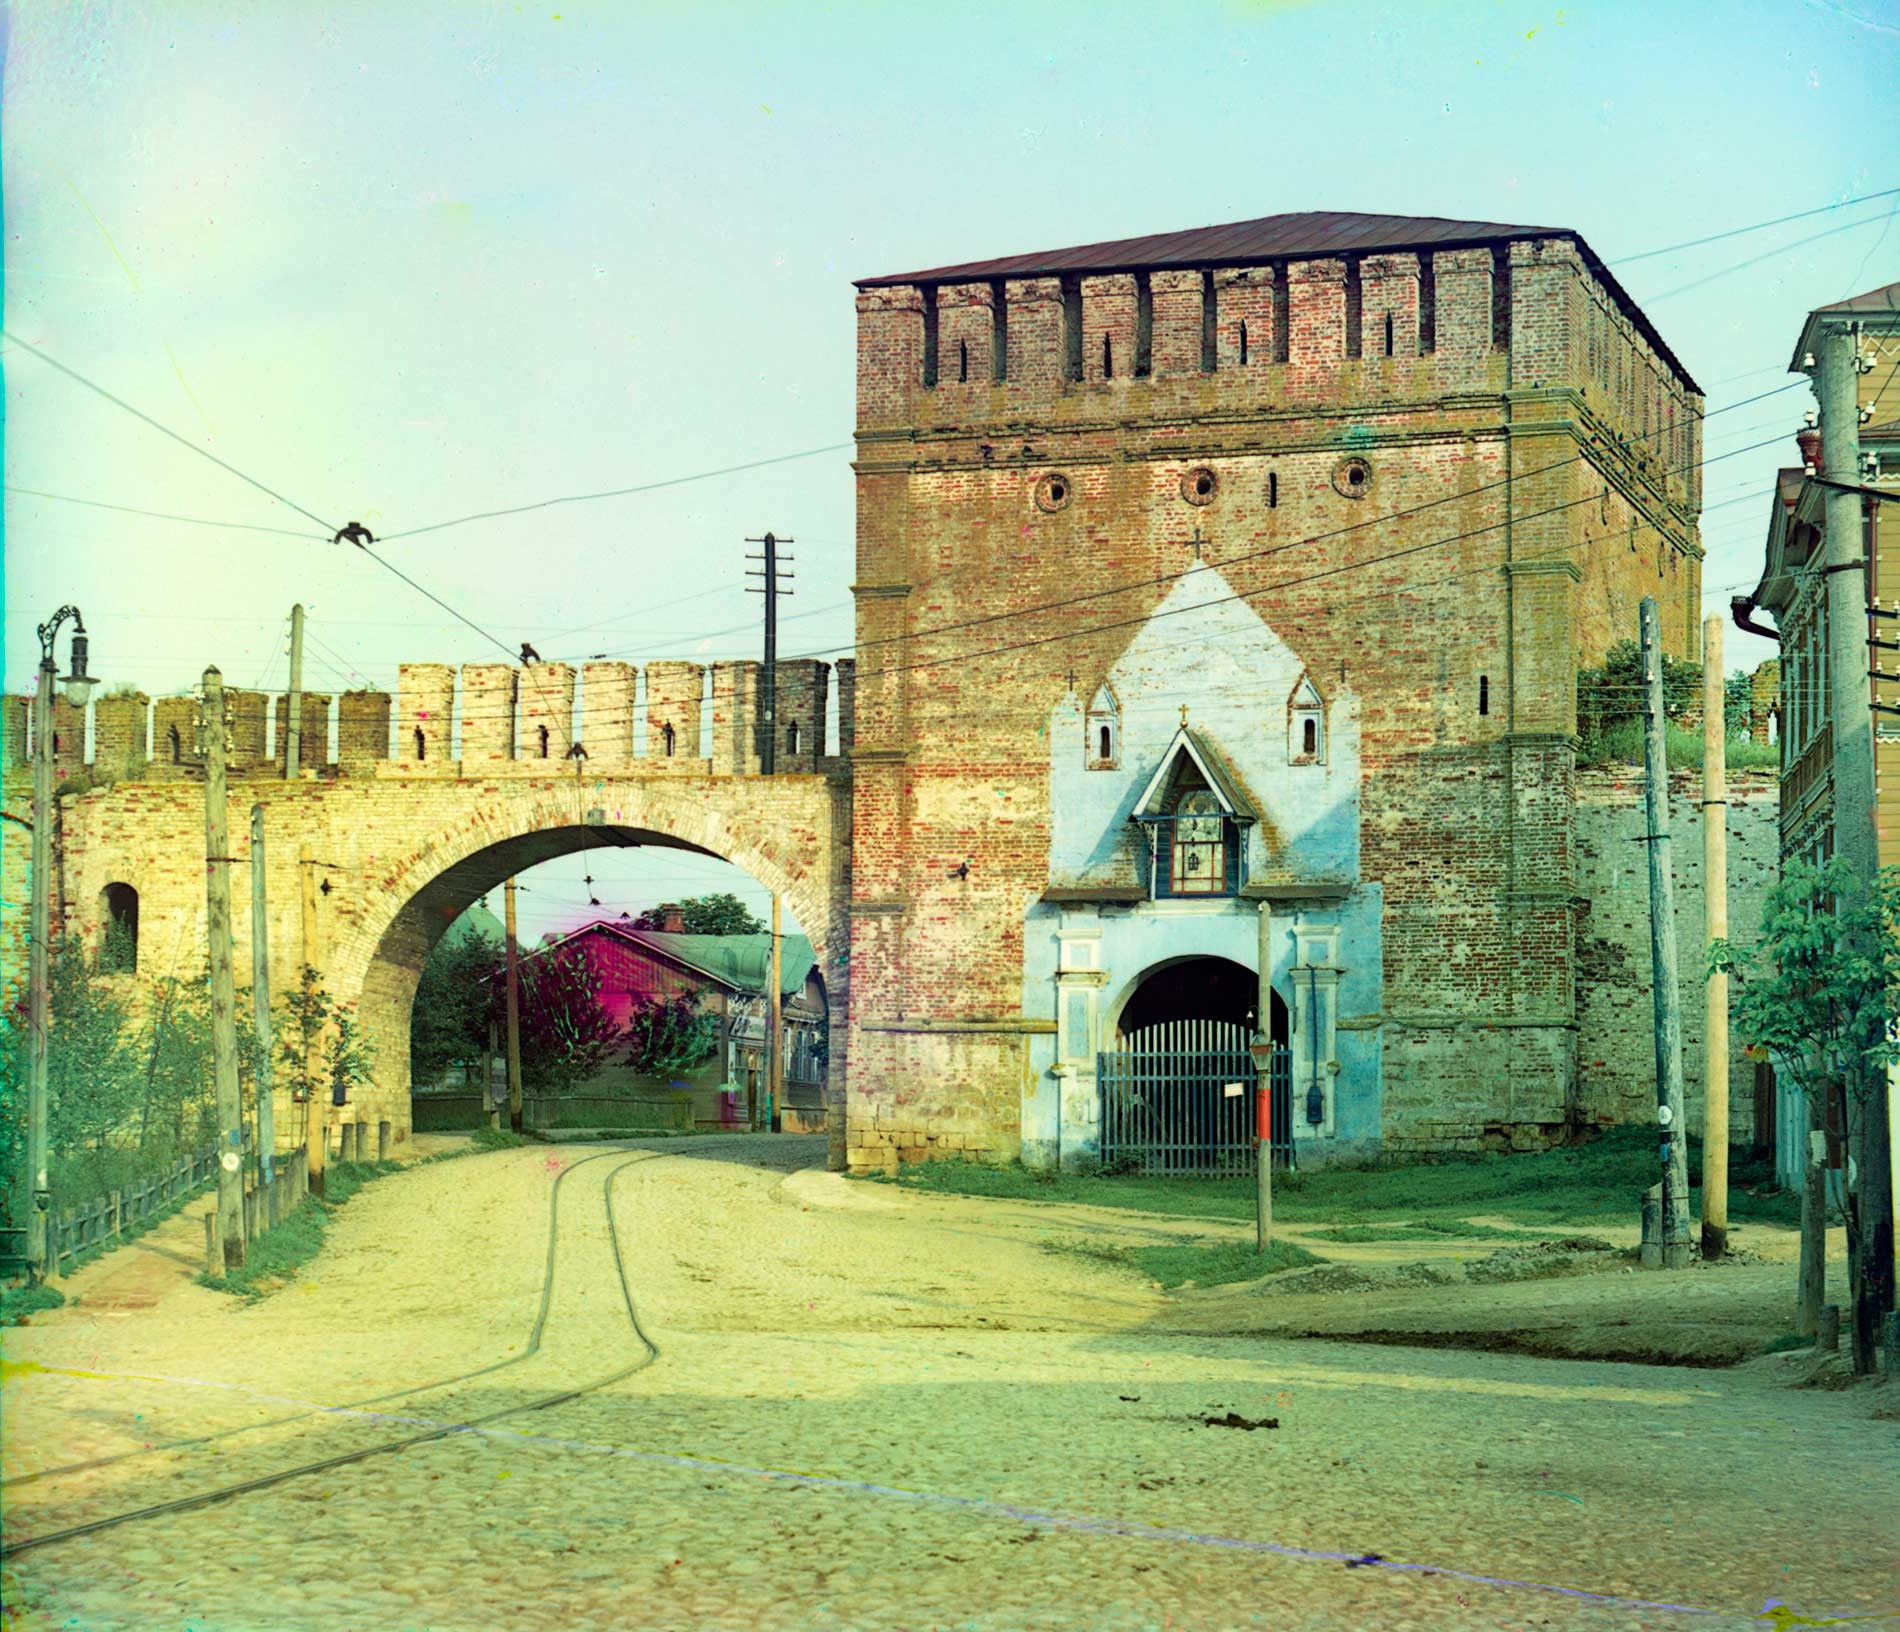 Smolensk citadel. St Nicholas Gate and Tower, with tram line. Summer 1912